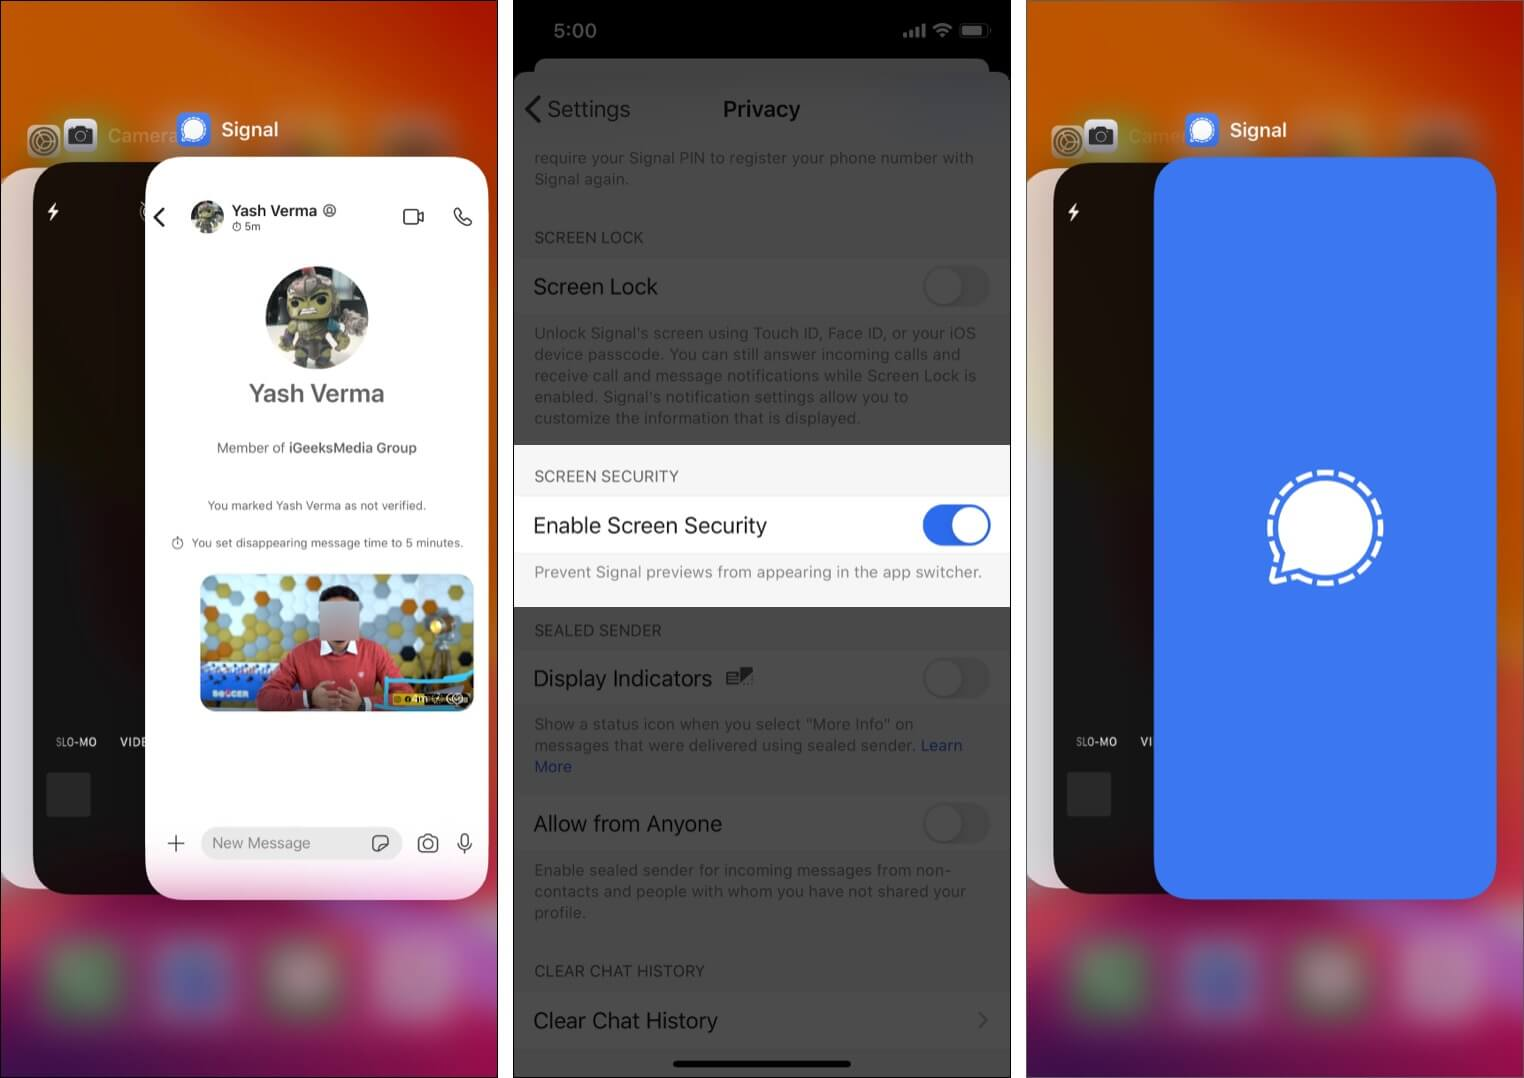 App Switcher screen security in Signal